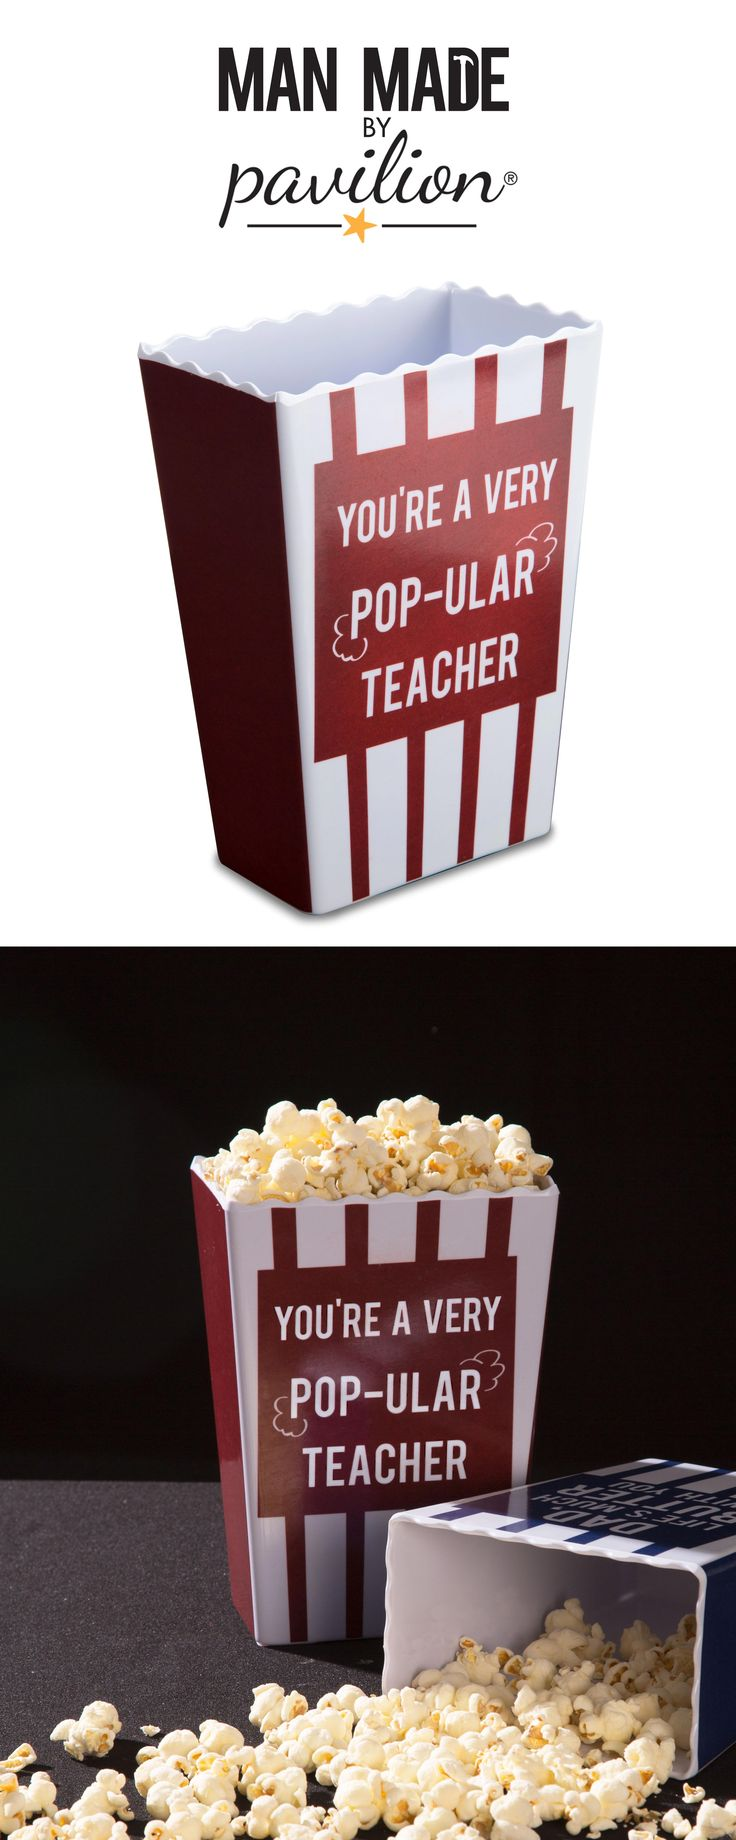 Man Made by Pavilion - You're A Very Popular Teacher - Red Striped Old Fashioned Melamine Popcorn Box - Teacher Gift - Movie Night